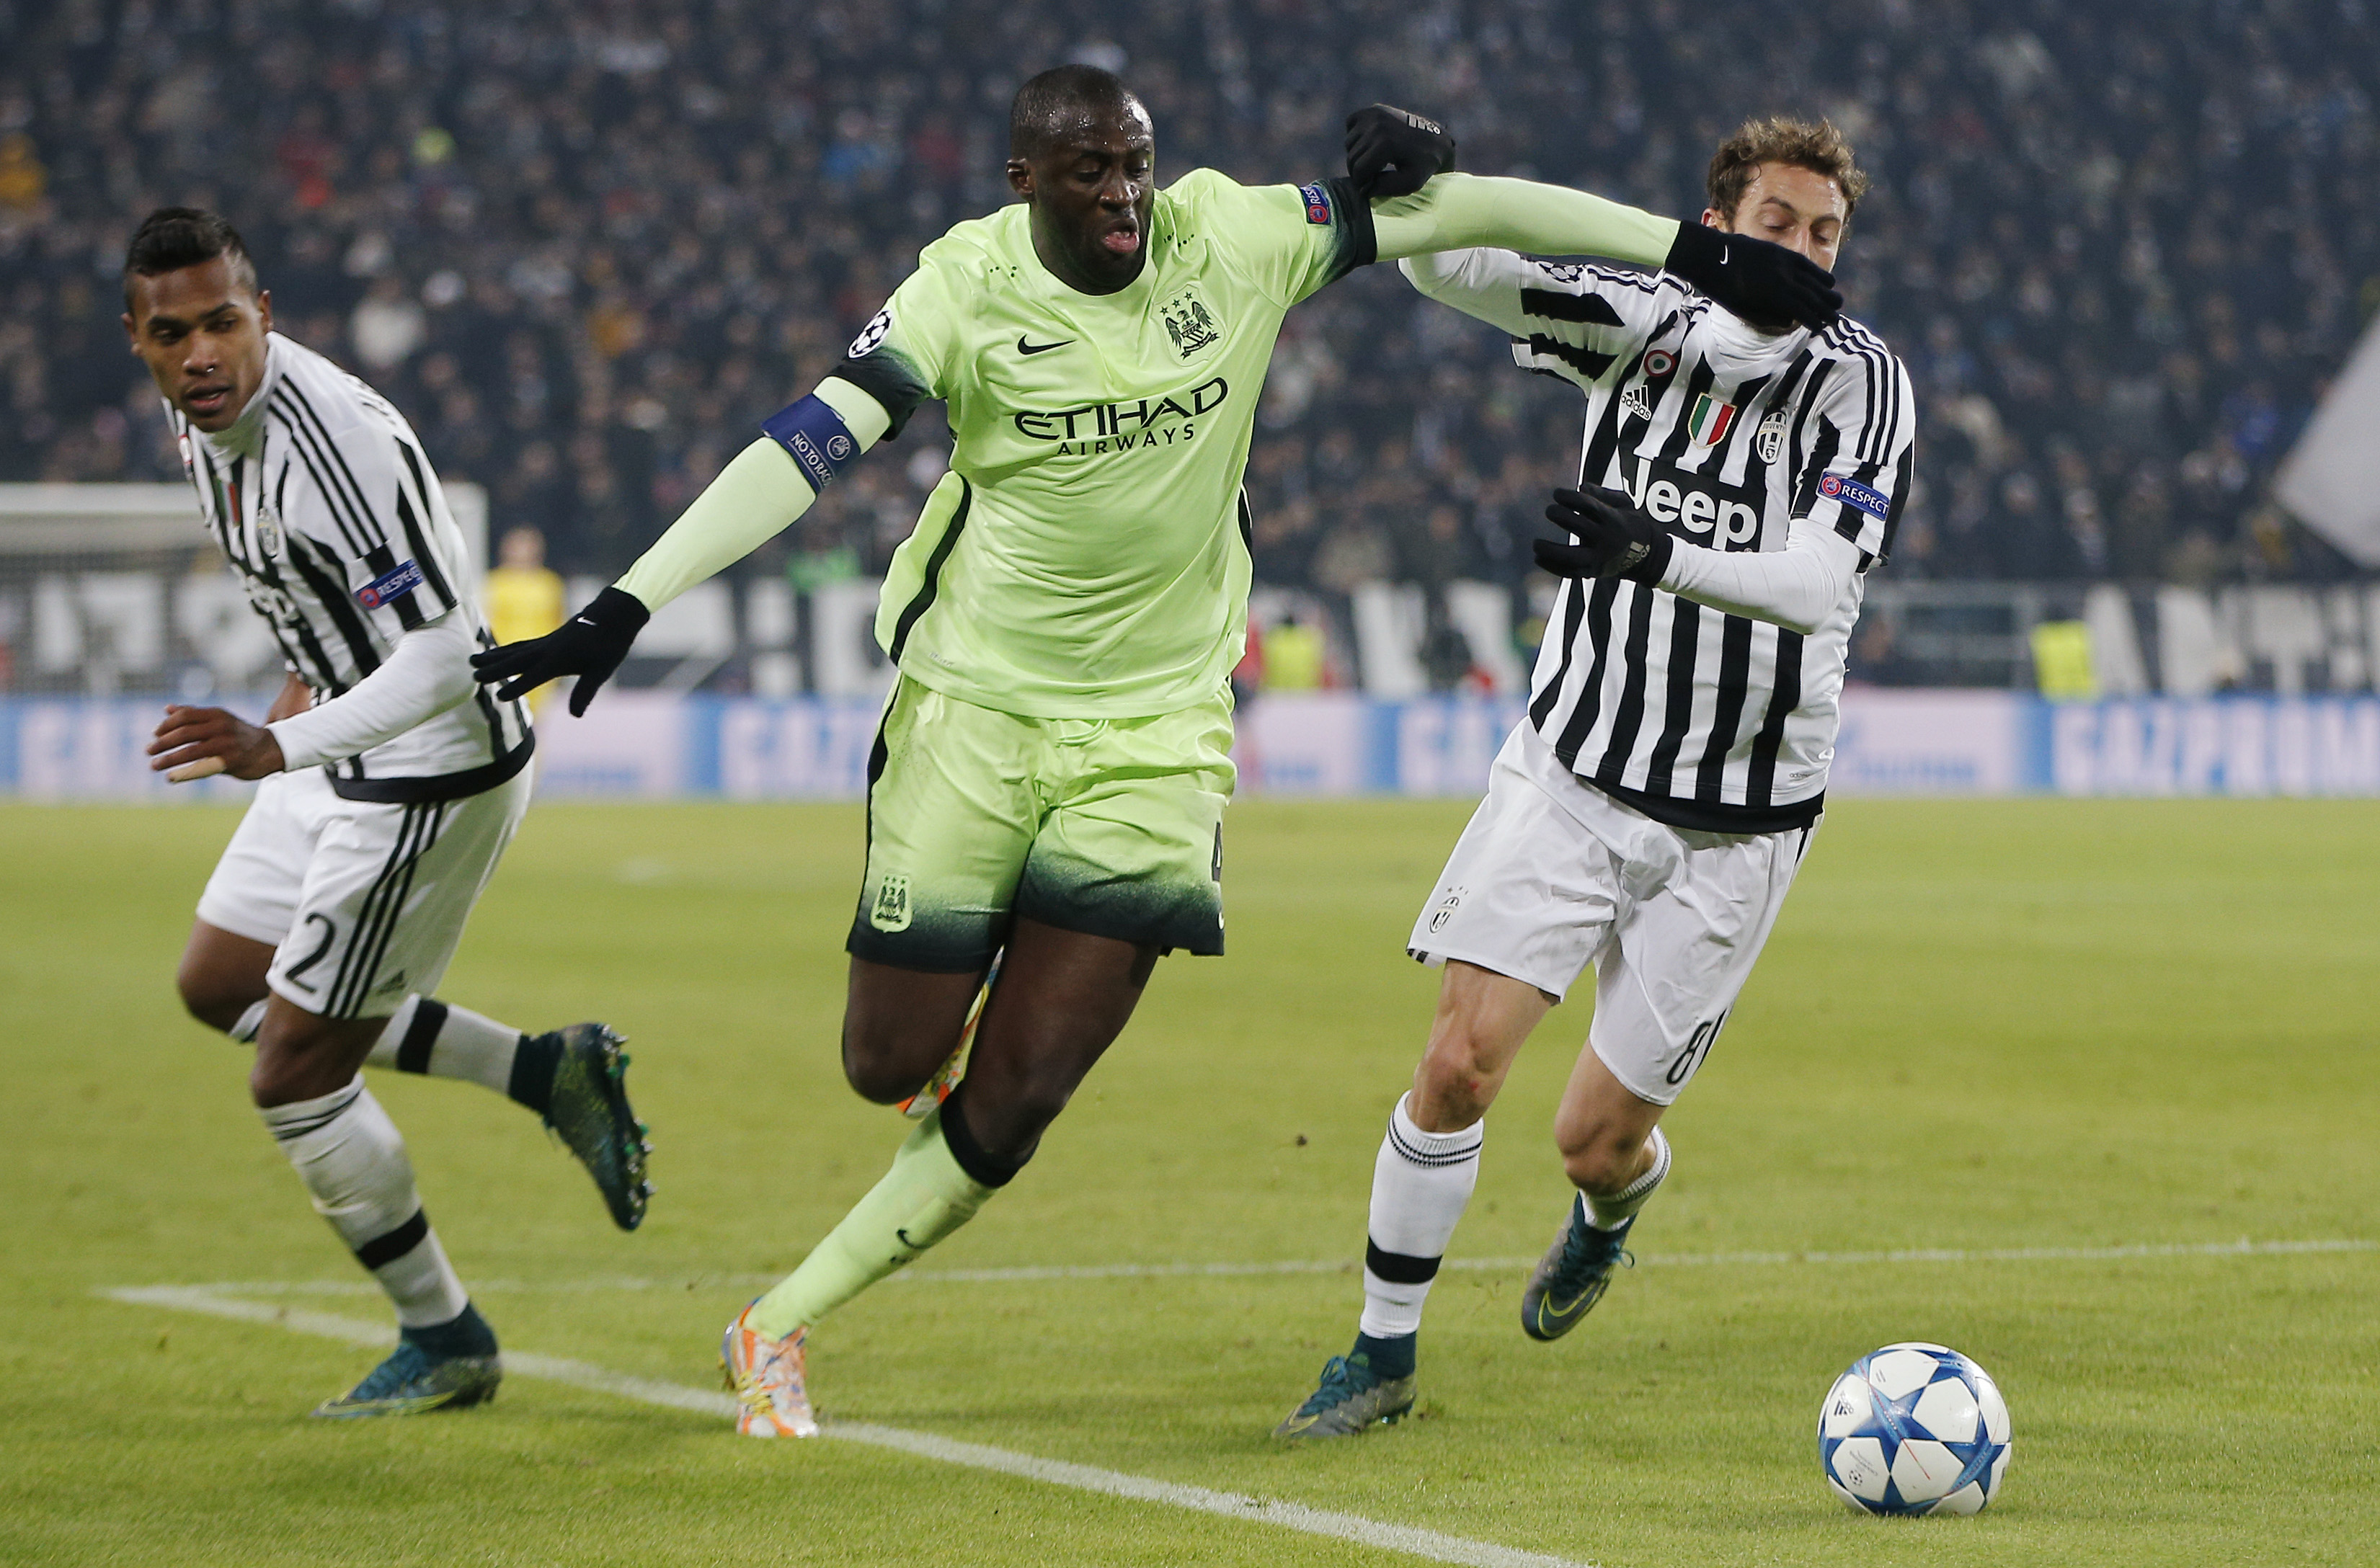 Football Soccer - Juventus v Manchester City - UEFA Champions League Group Stage - Group D - Juventus Stadium, Turin, Italy - 25/11/15nManchester City's Yaya Toure and Juventus' Claudio Marchisio and Alex SandronAction Images via Reuters / Andrew CouldridgenLivepicnEDITORIAL USE ONLY.